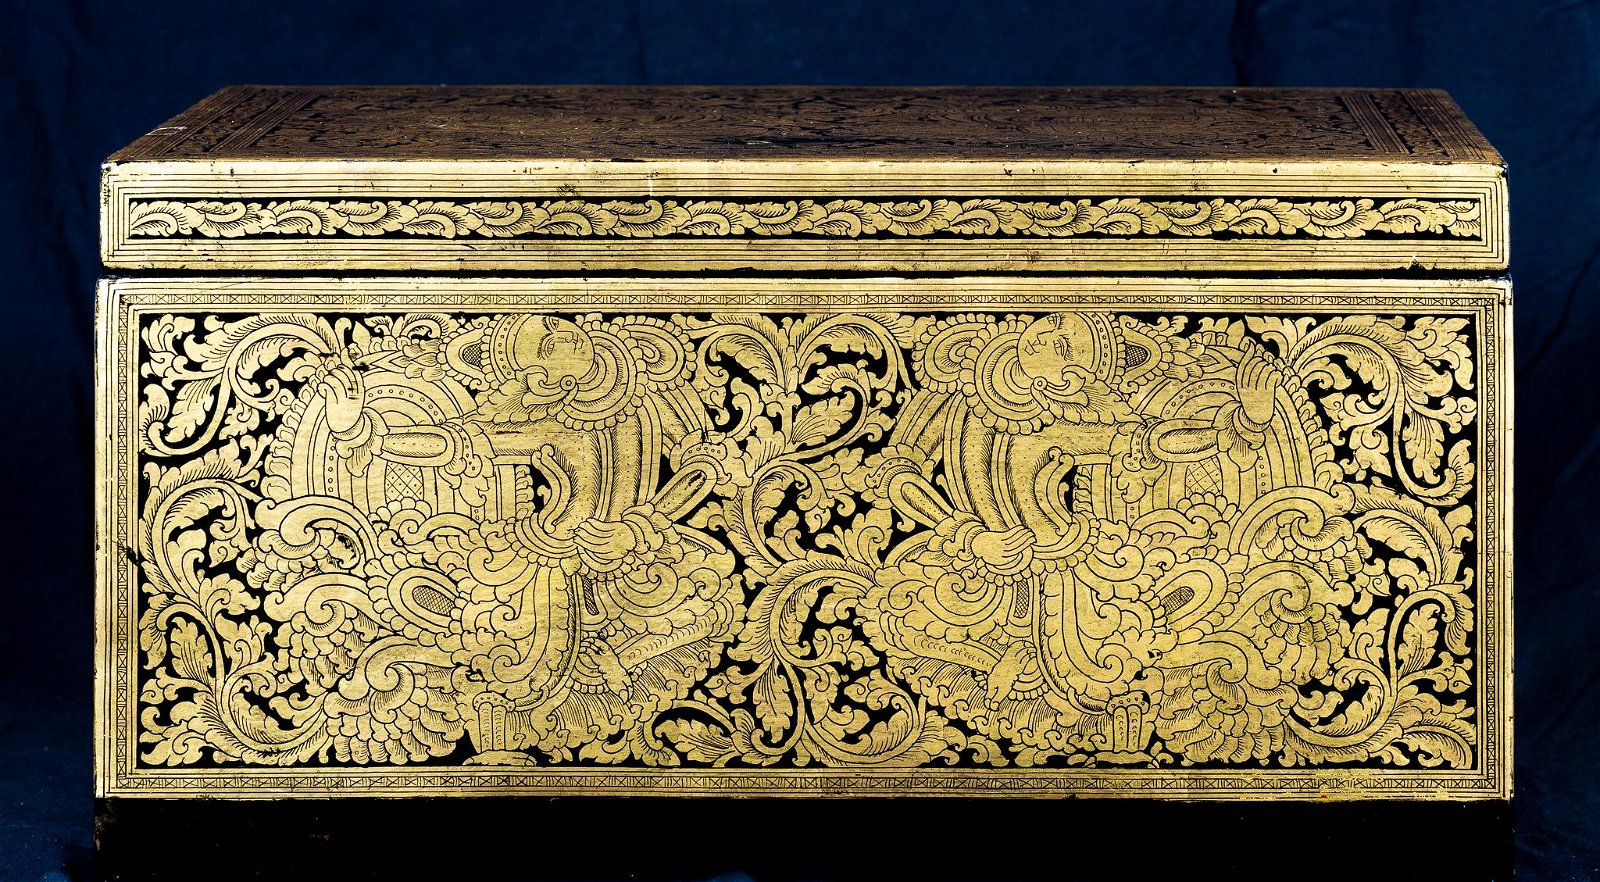 19th Century Burmese Sadaik or Lacquer Manuscript Box